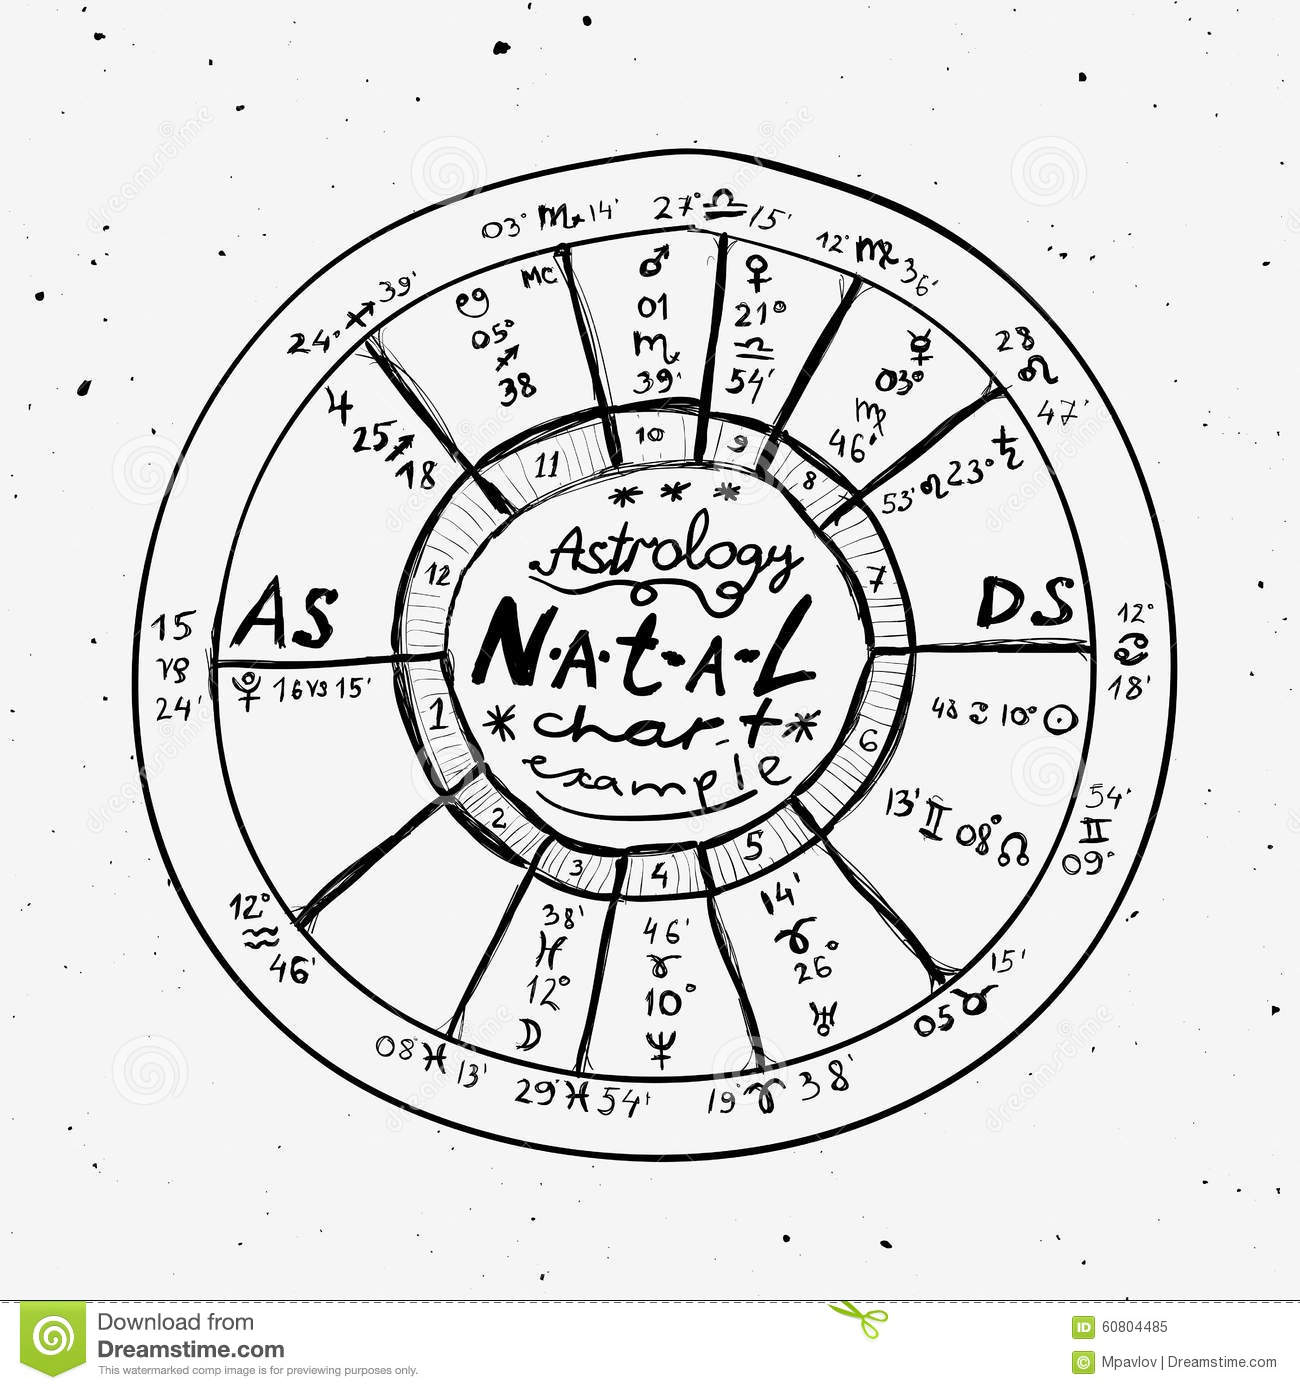 Astrology hand drawn background stock vector illustration of astrology hand drawn background nvjuhfo Choice Image